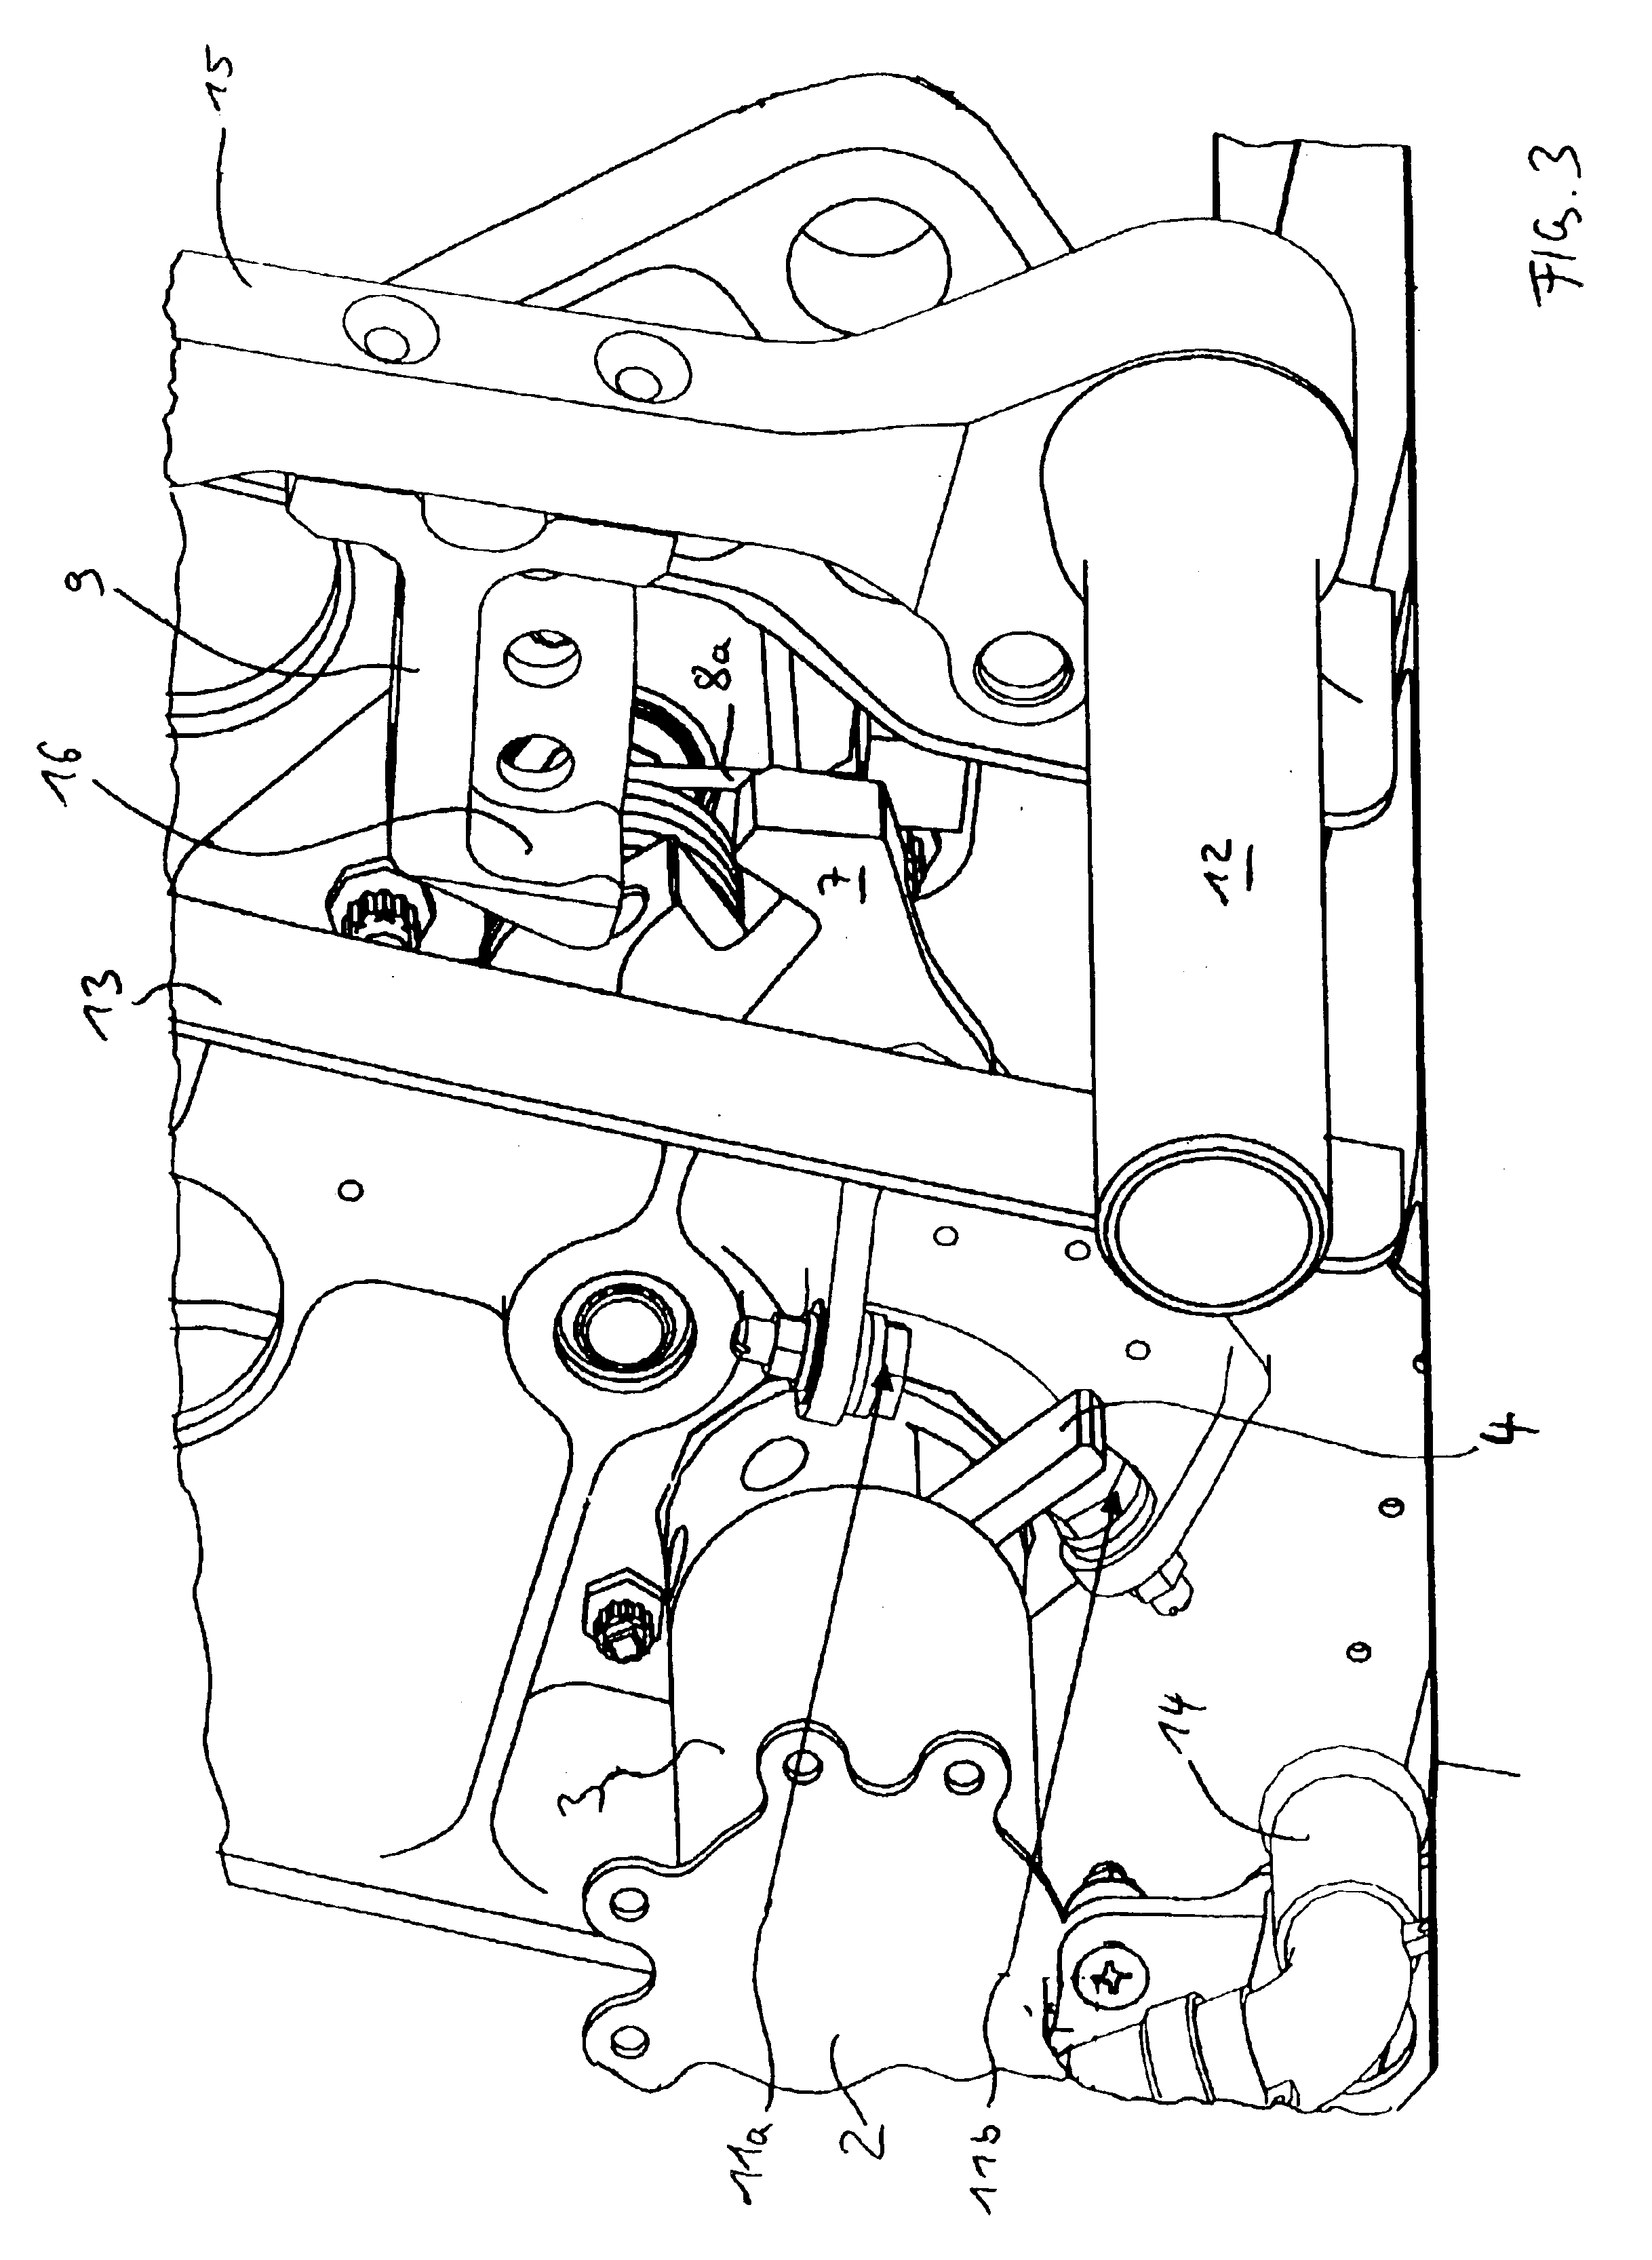 Patent Us6951320 Lock Mechanism For Securing A Door Kinematics 1989 S10 Engine Diagram Drawing